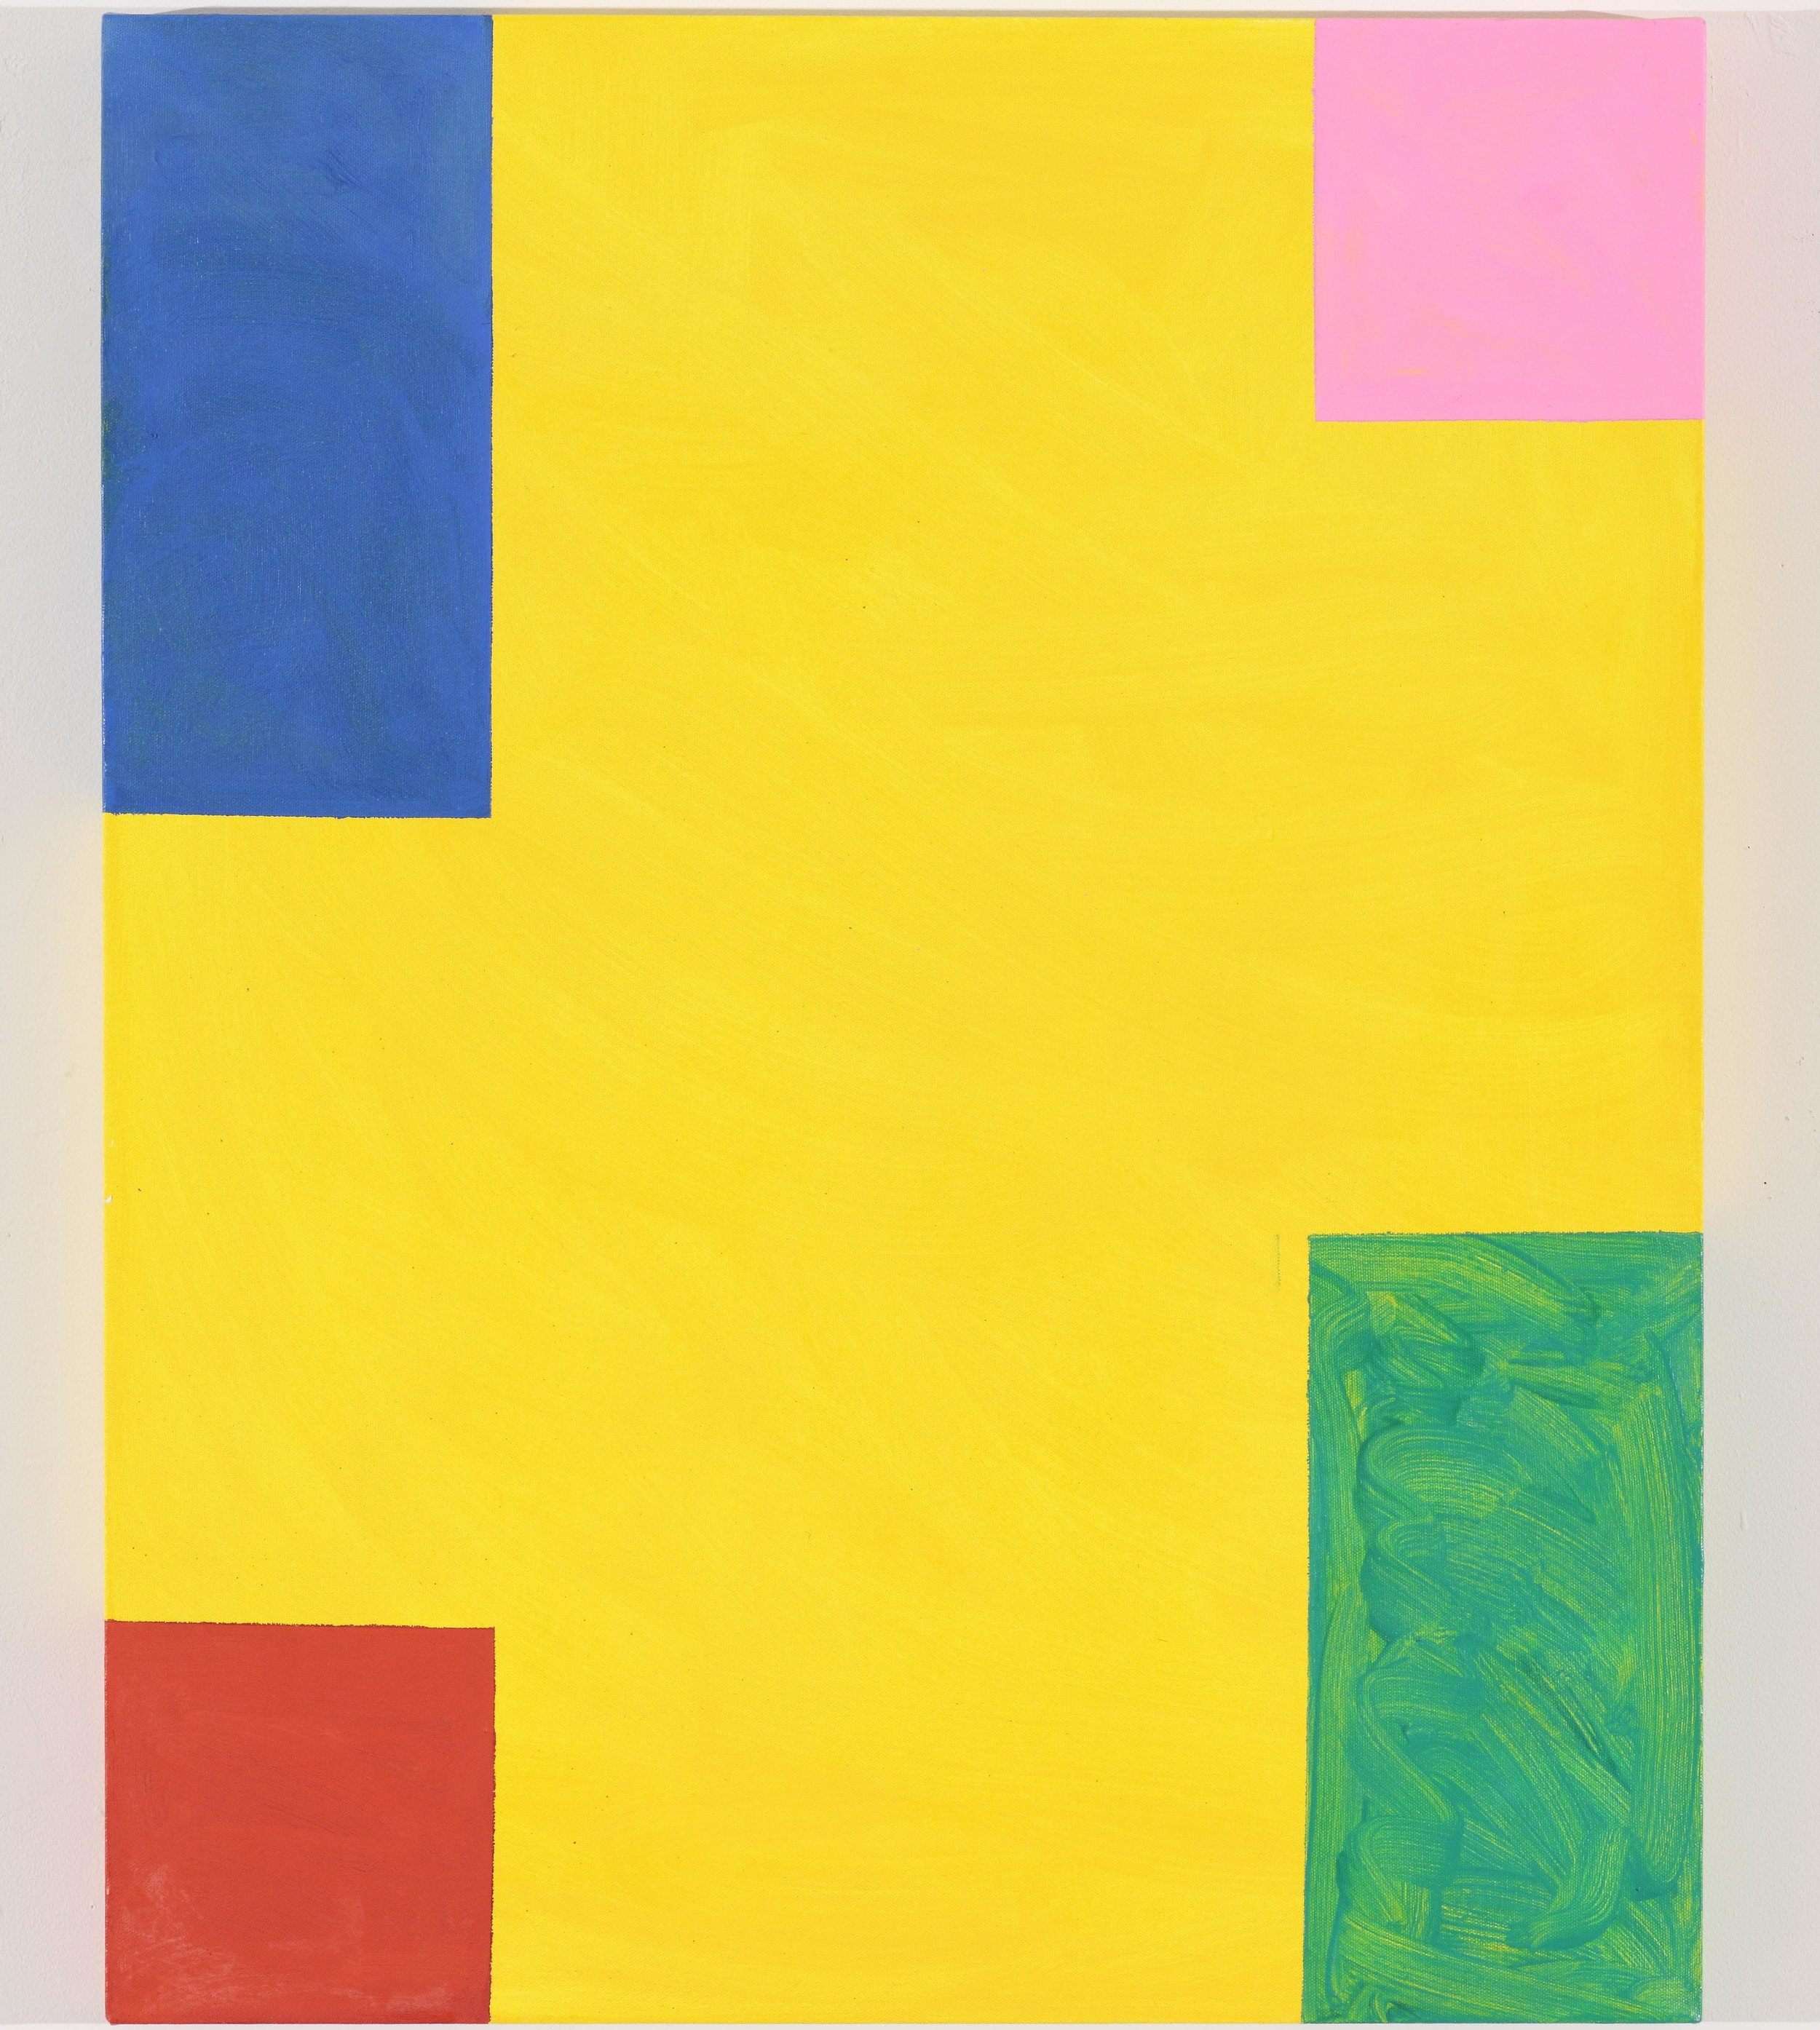 M. Heilmann - Taste of Honey, 2011